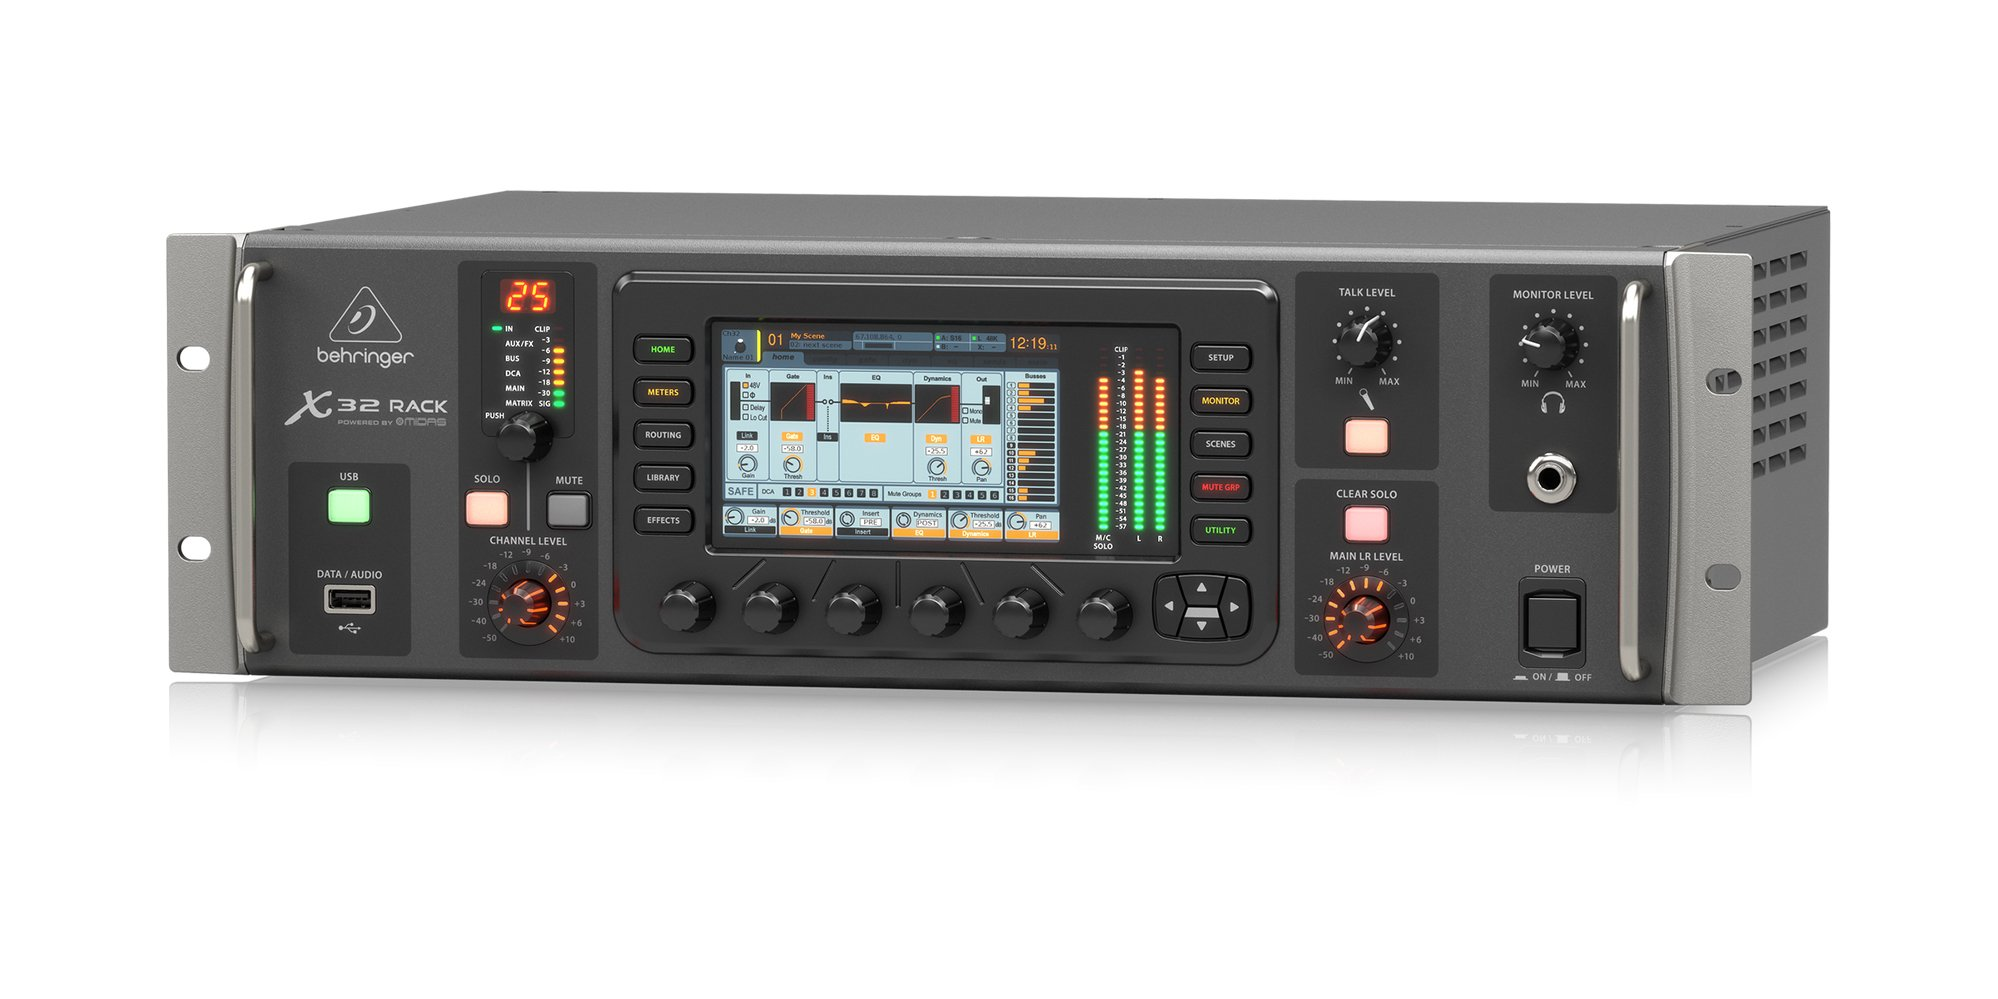 behringer x32 rack 40 channel 25 bus digital rackmount mixer with 16 mic preamps full compass. Black Bedroom Furniture Sets. Home Design Ideas